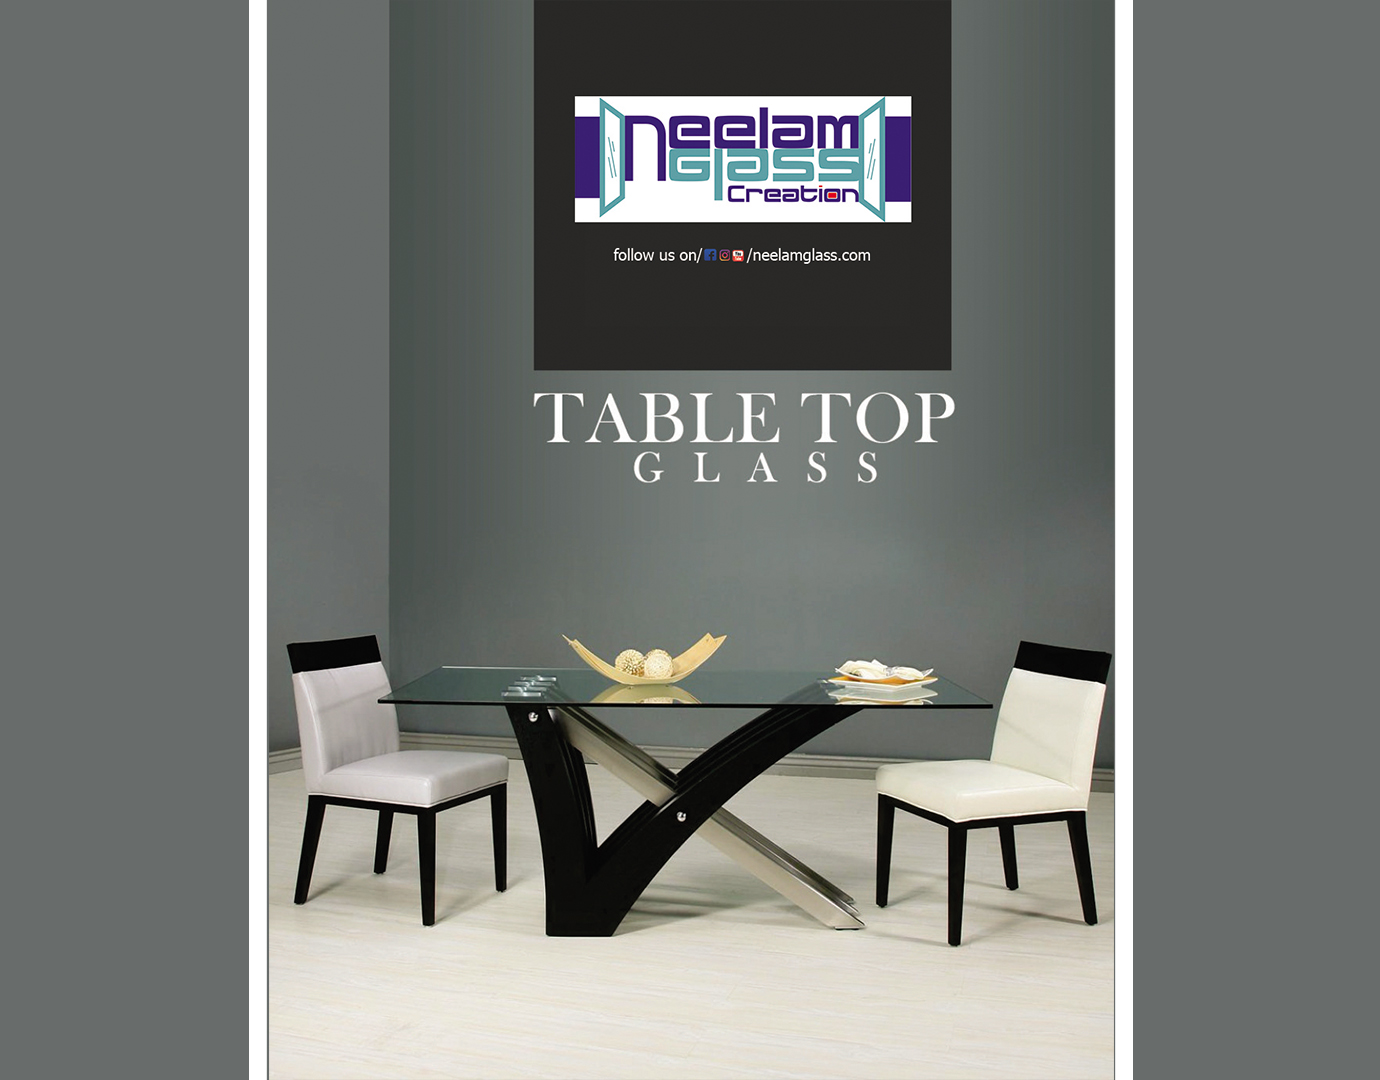 4.table top